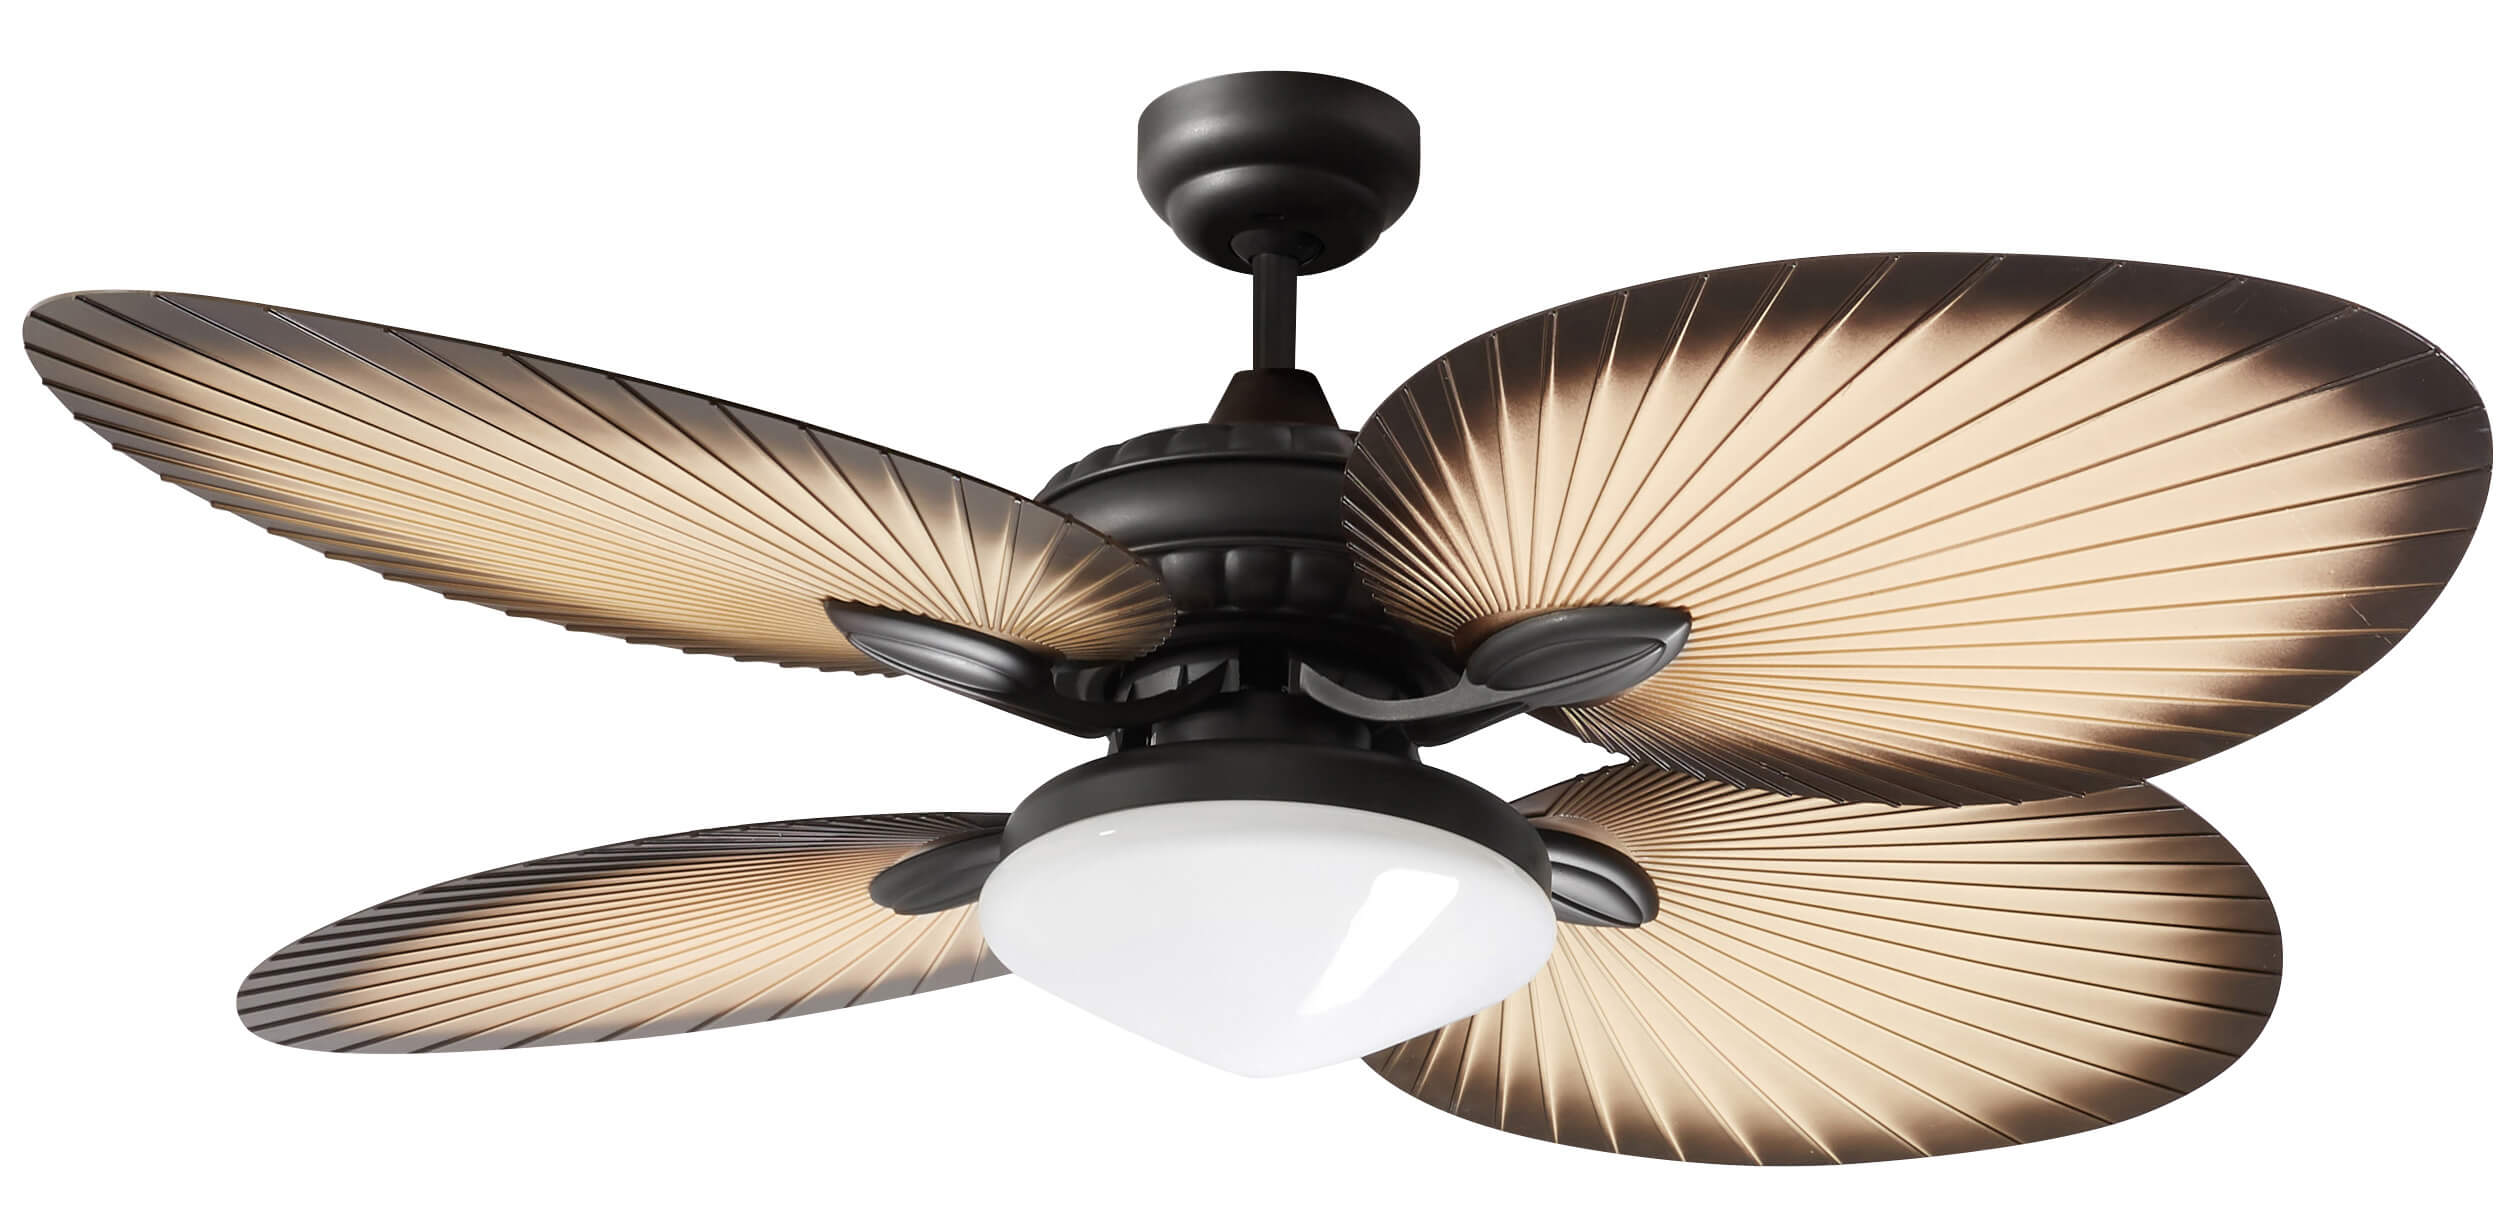 Outdoor Ceiling Fan Oasis 132cm 52 With Light And Remote Home Commercial Heaters Ventilation Ceiling Fans Uk